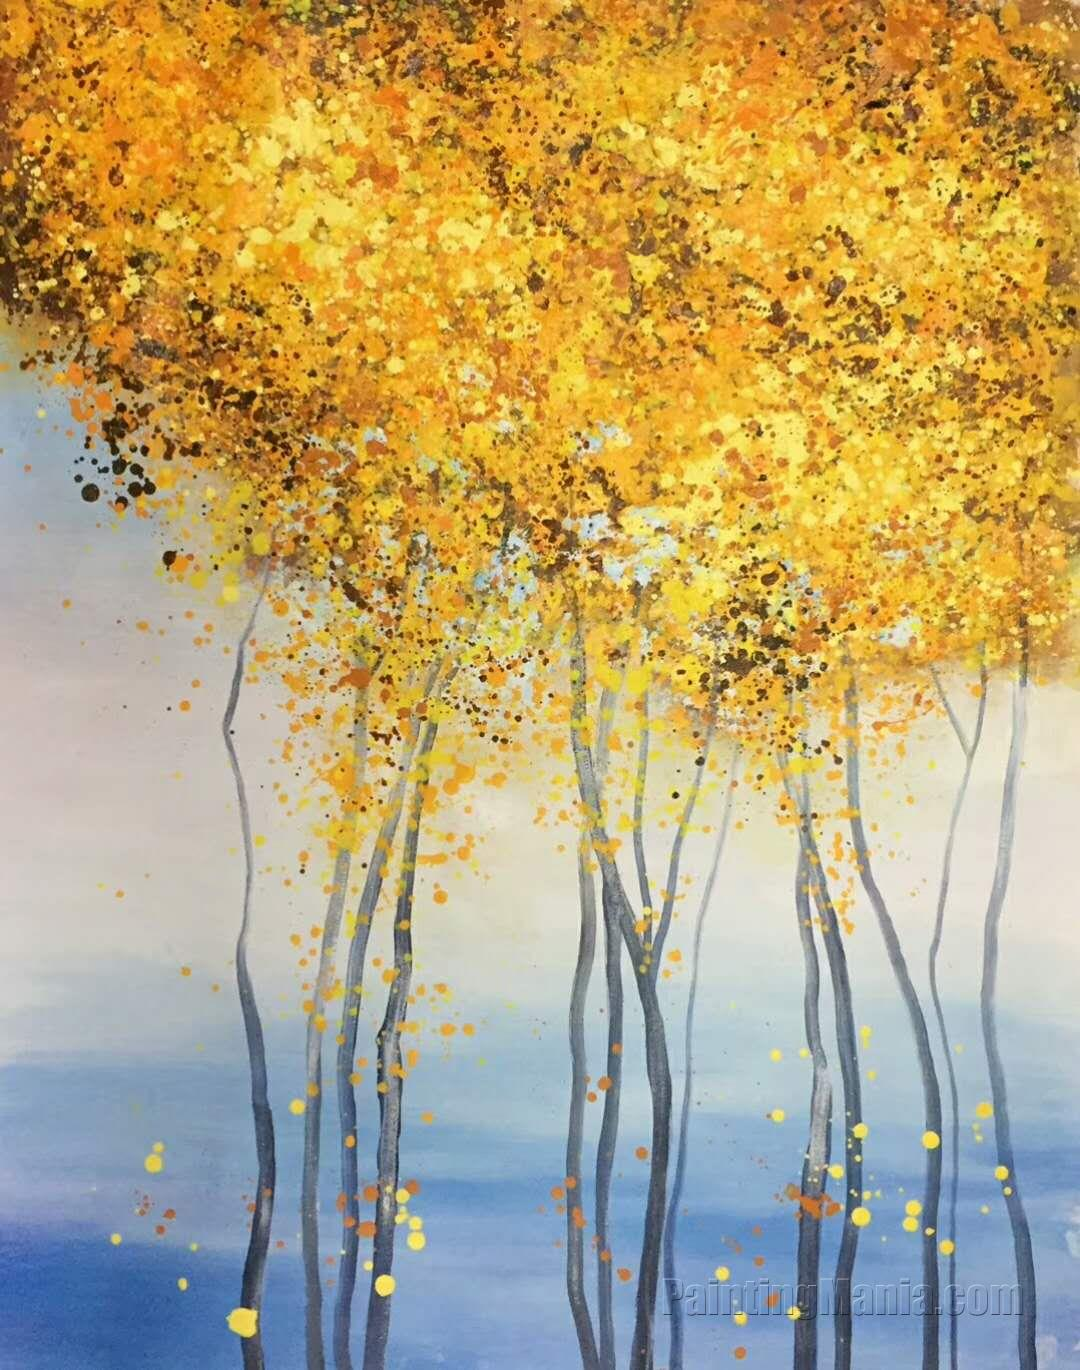 The Golden Trees